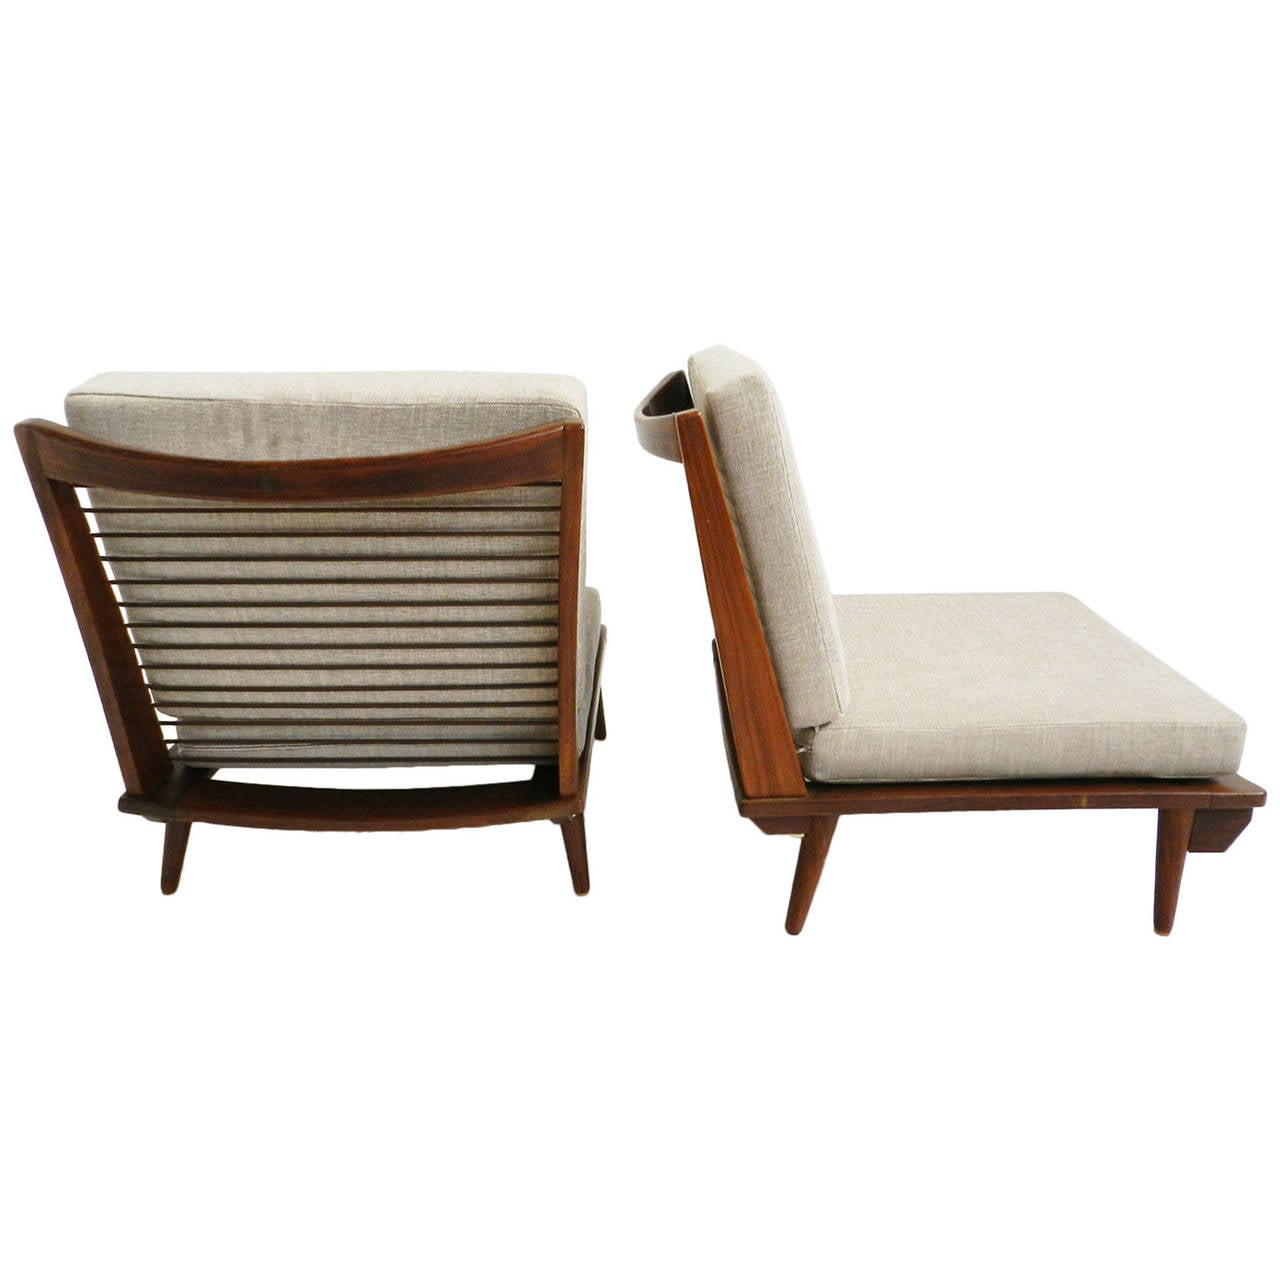 Minimal low lounge chairs in Japanese style at 1stdibs